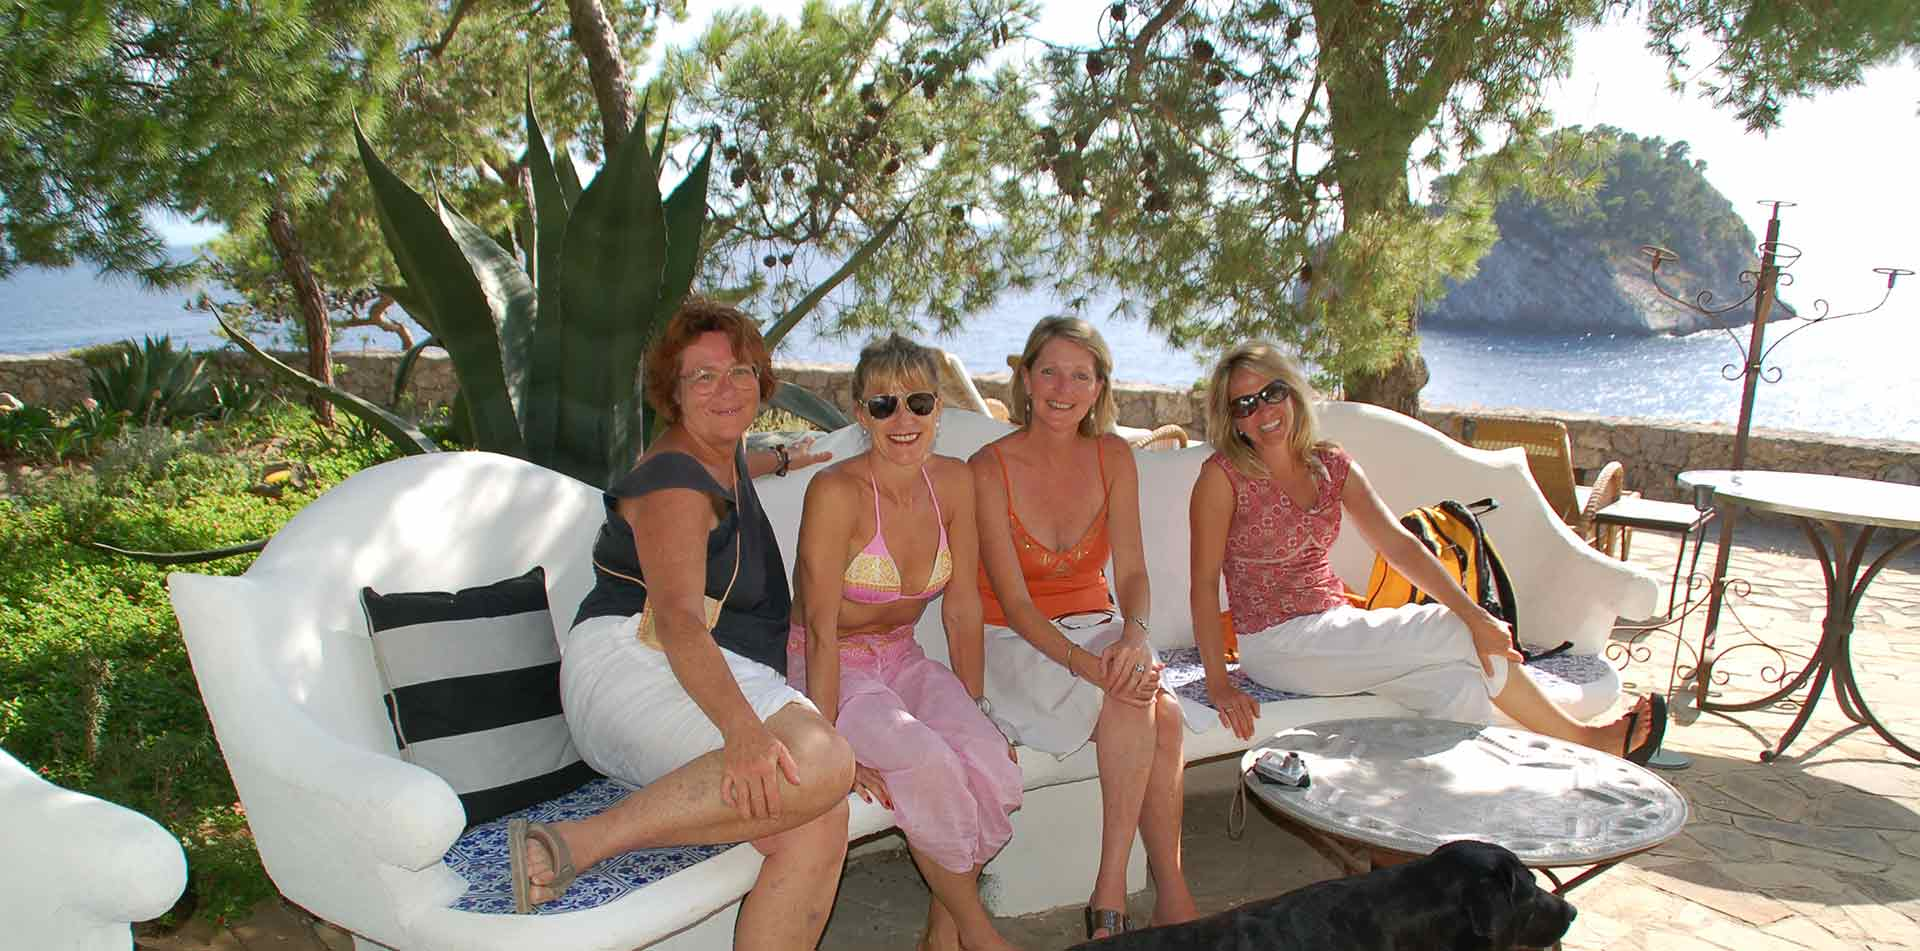 Europe Italy group of women enjoying the patio with a beautiful coastline in the background-luxury vacation destinations